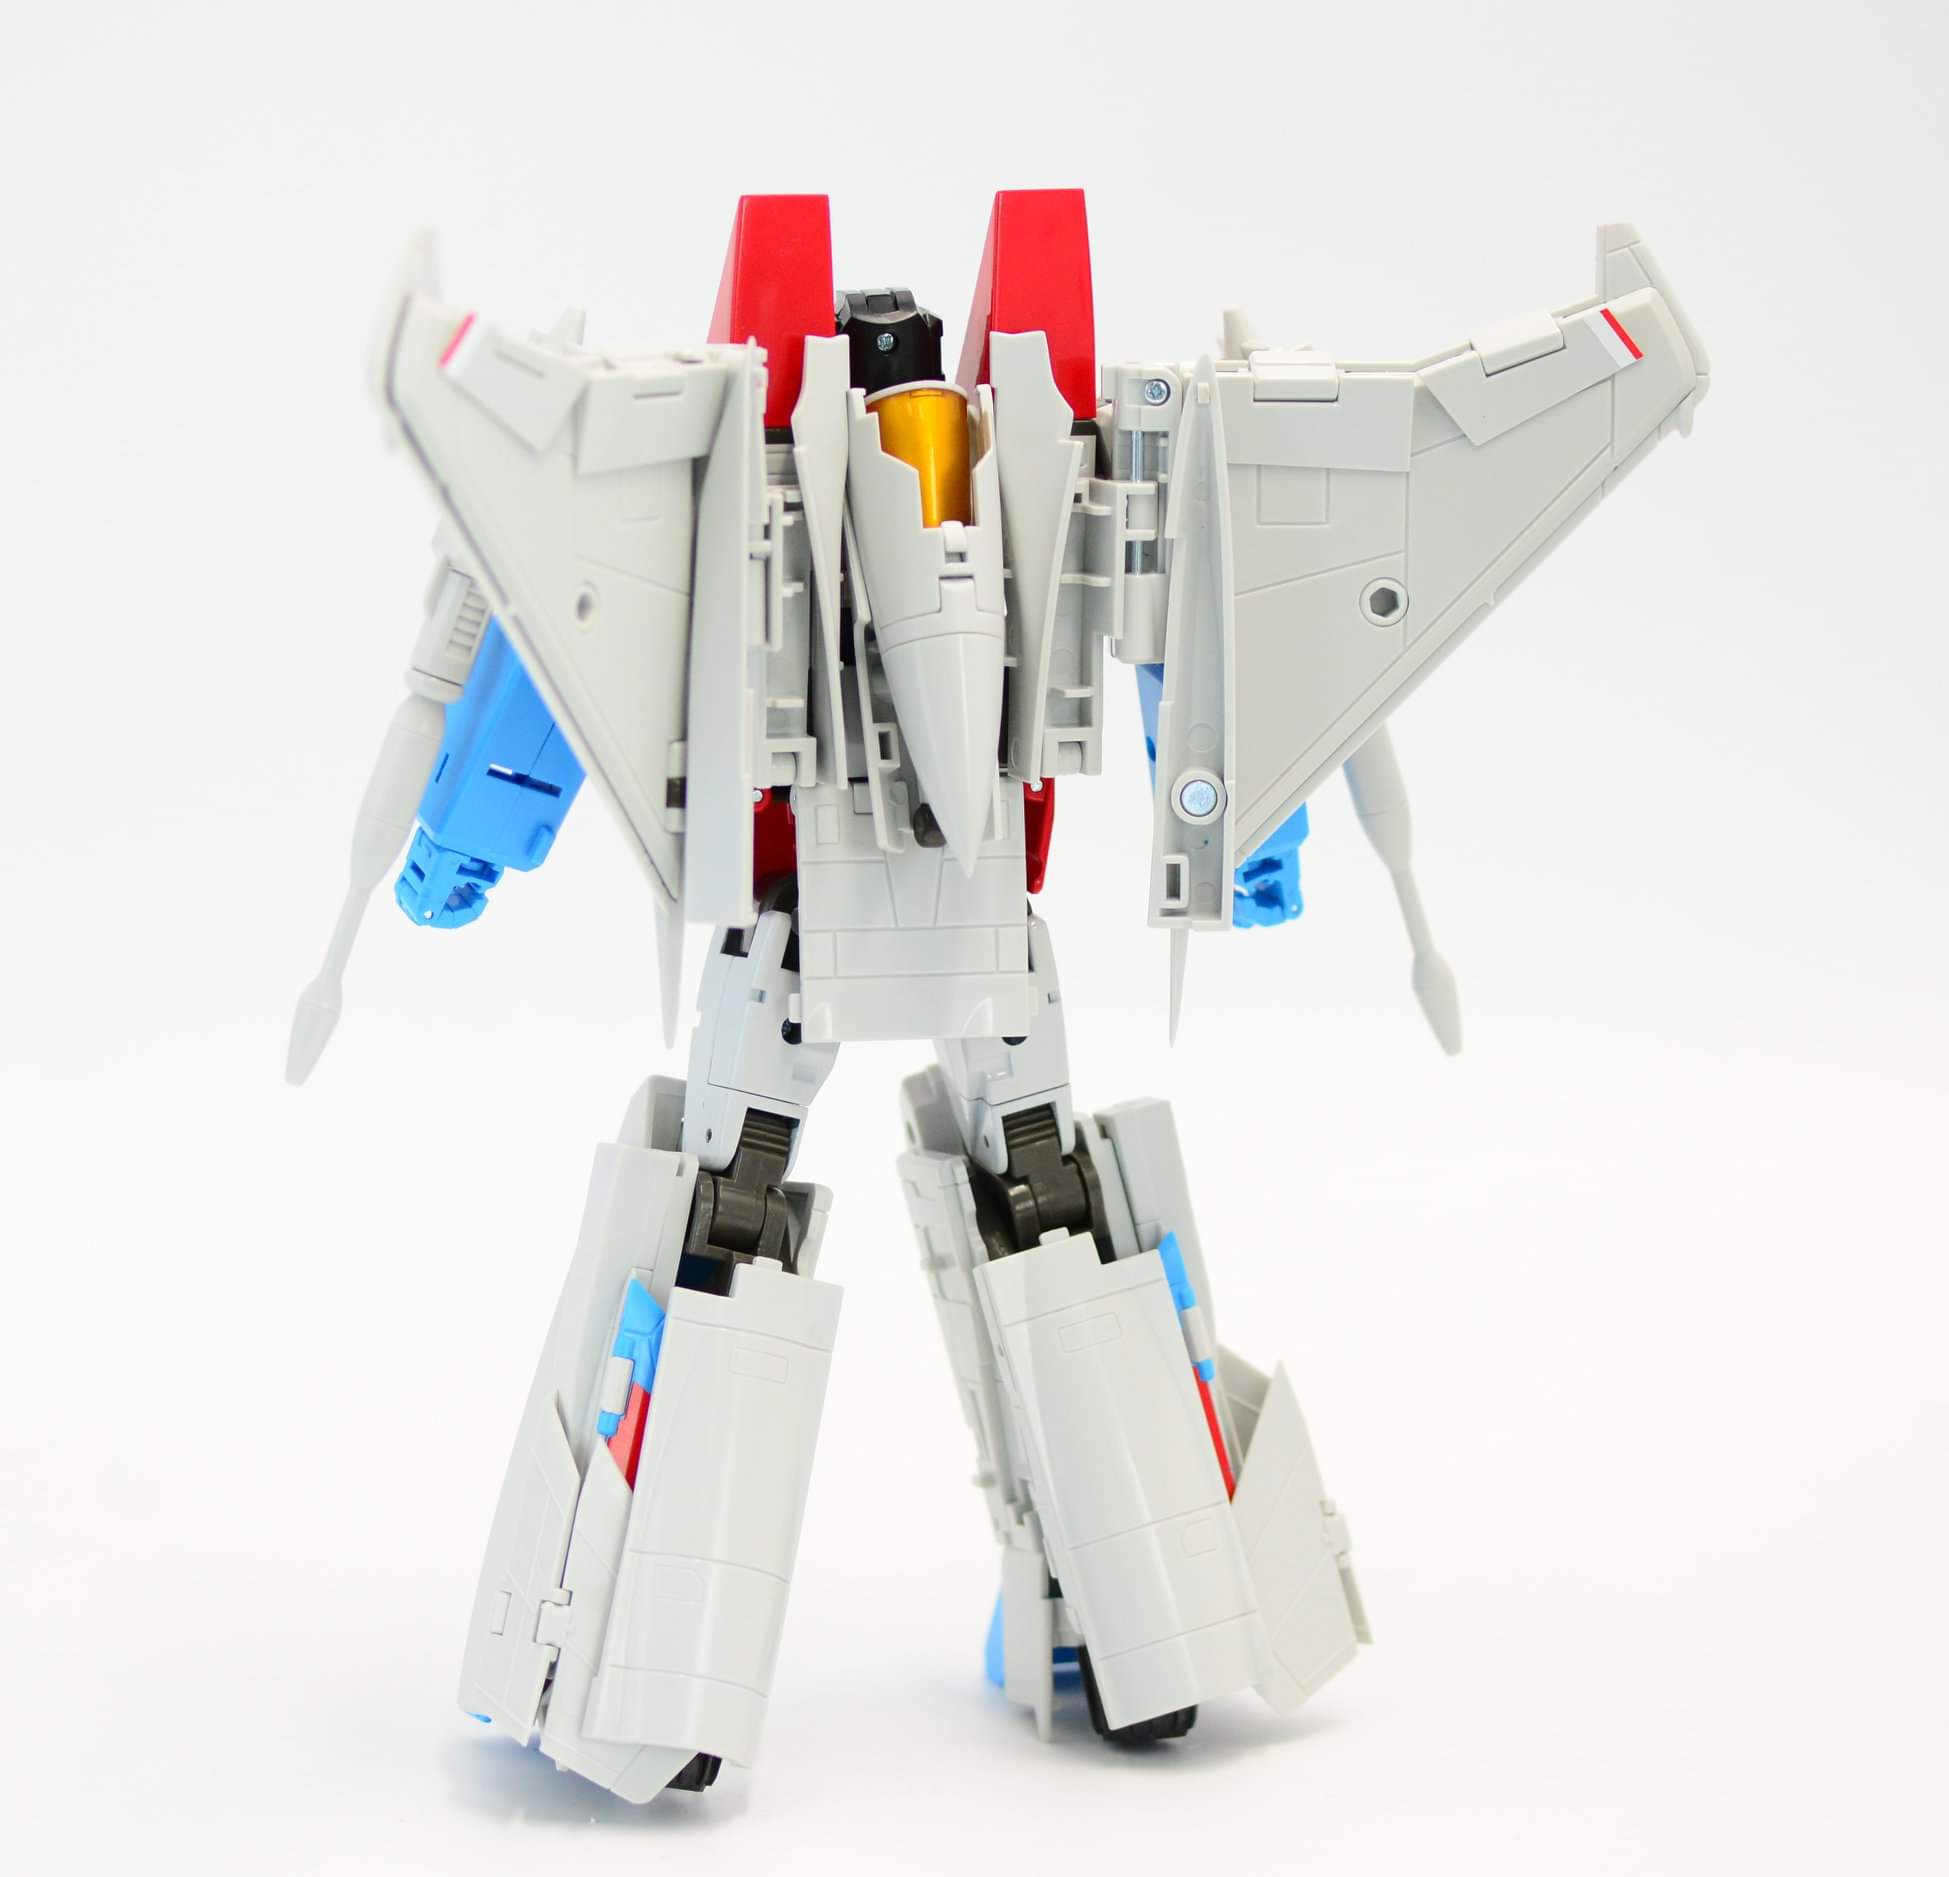 [Maketoys] Produit Tiers - MTRM - Seekers/Chasseurs Décepticons - Page 3 1krQS6sA_o